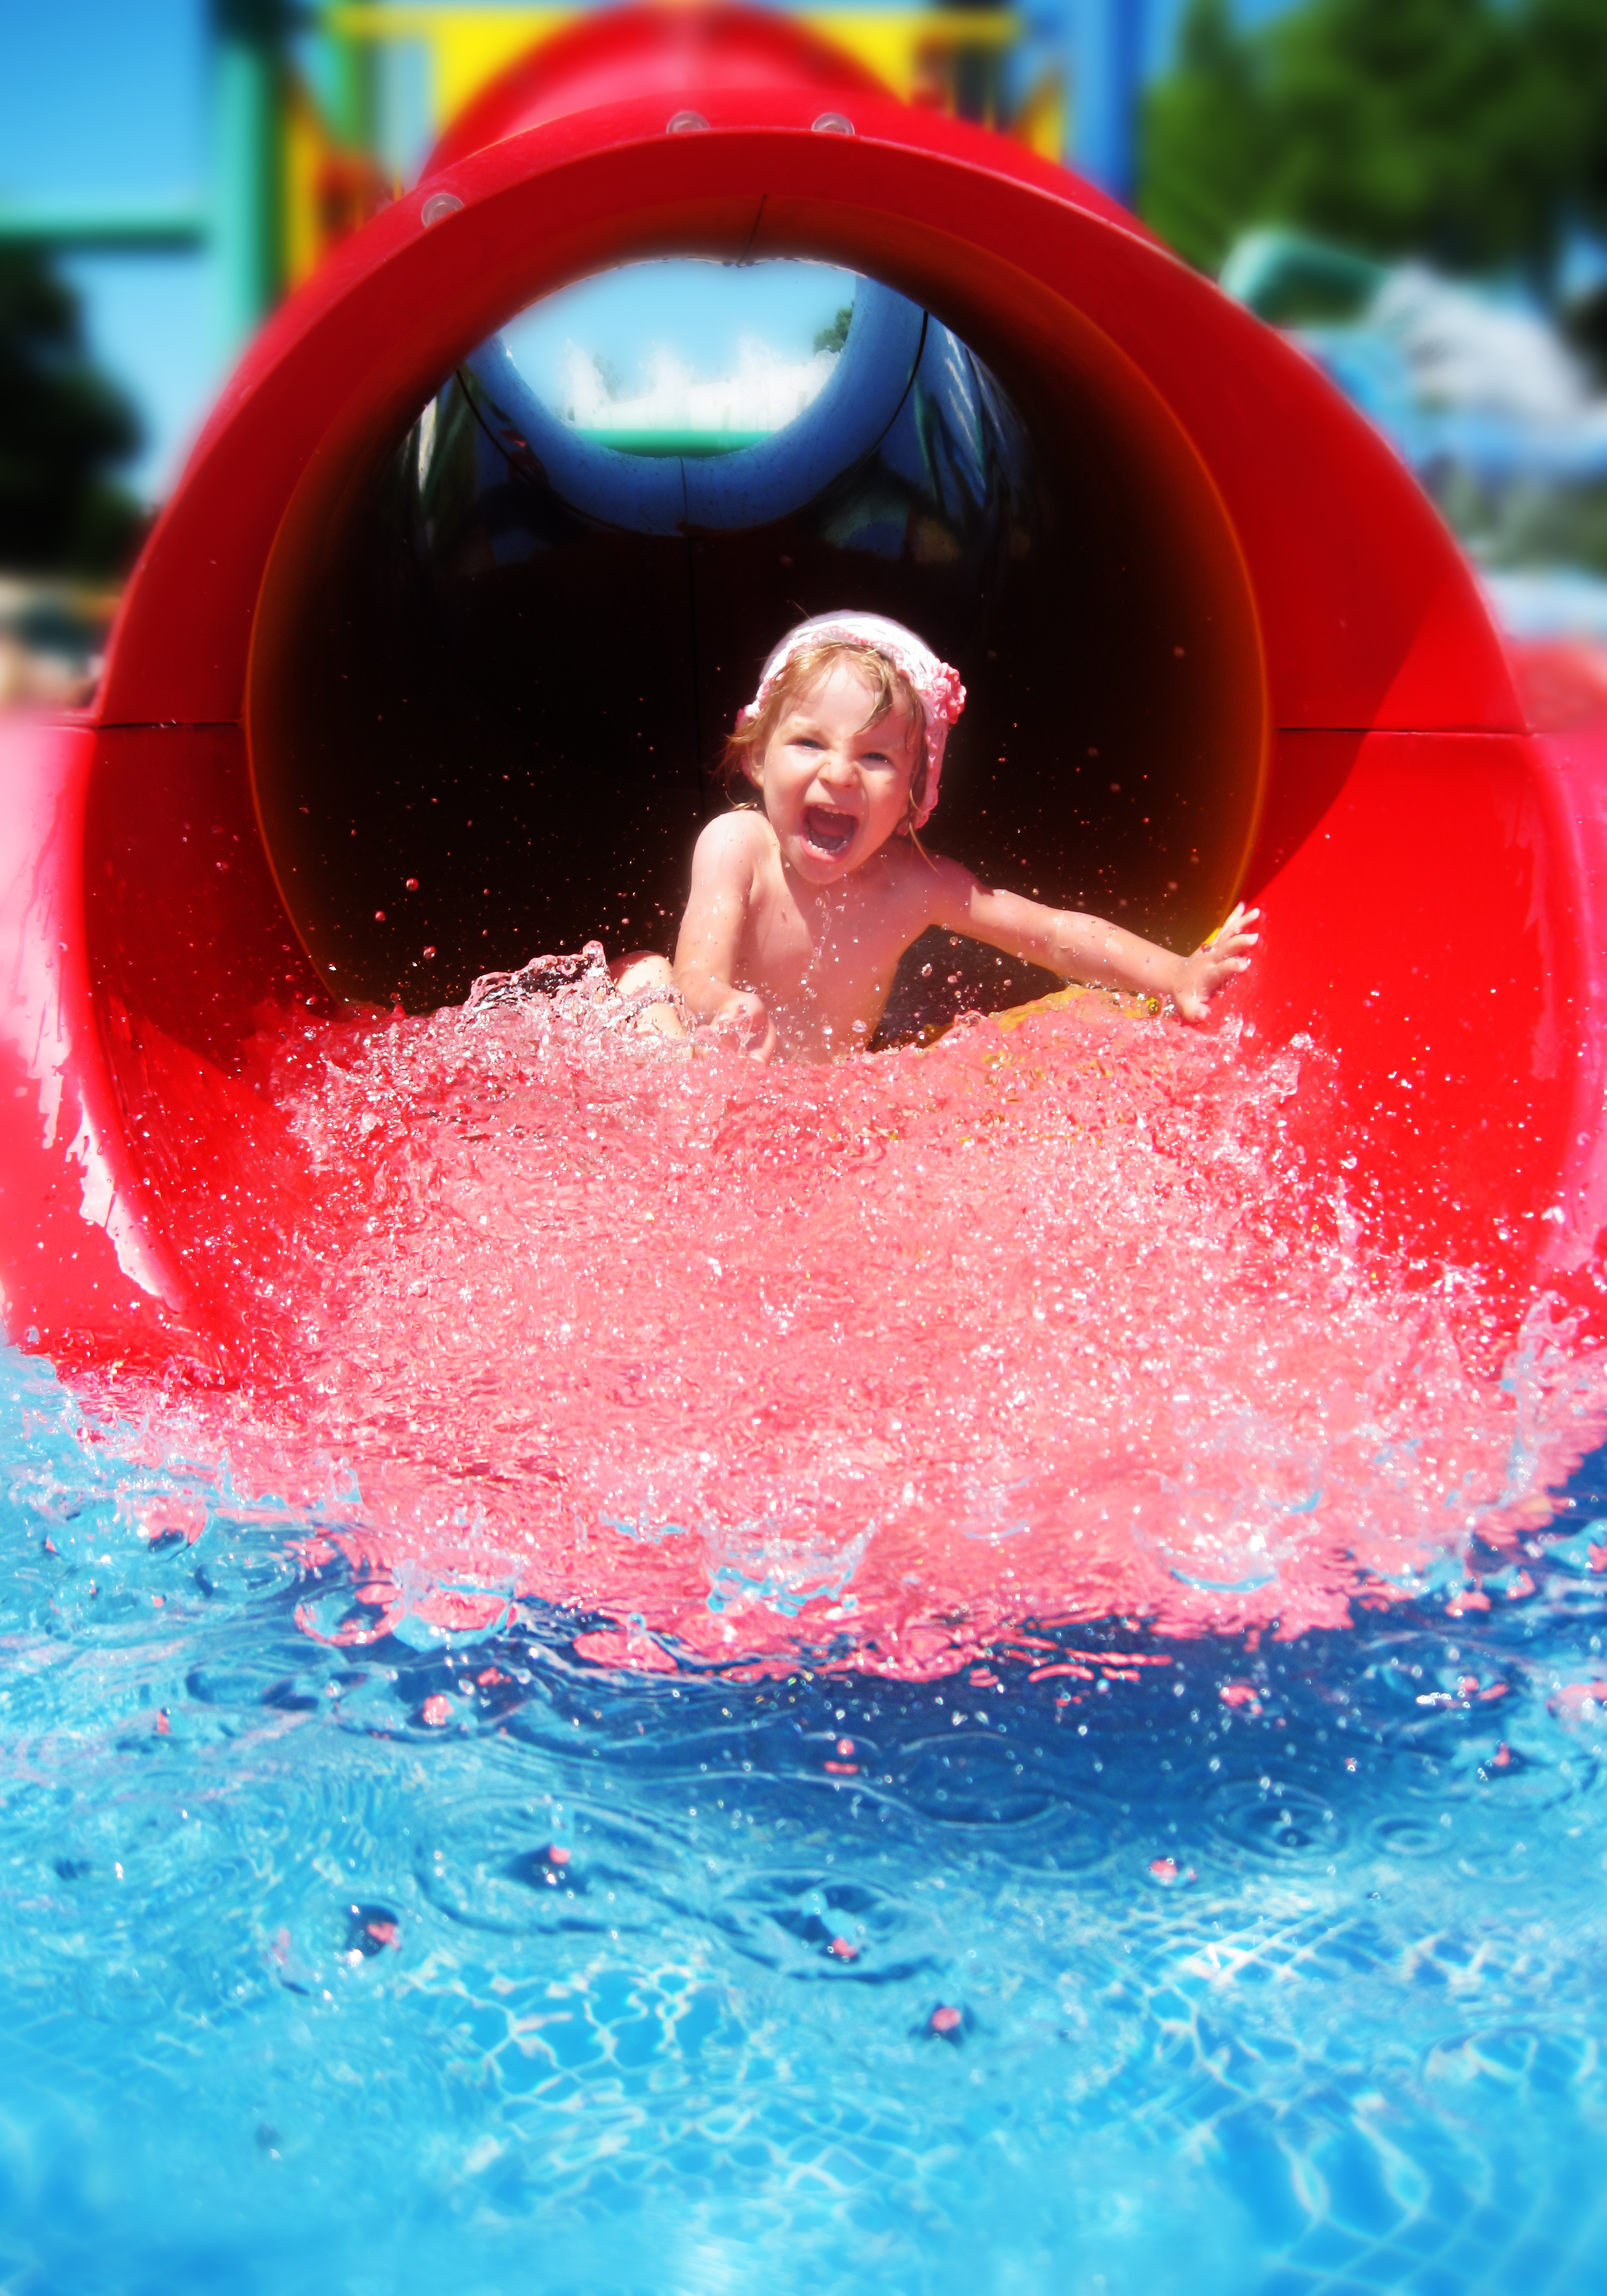 Happy girl coming down the red water slide